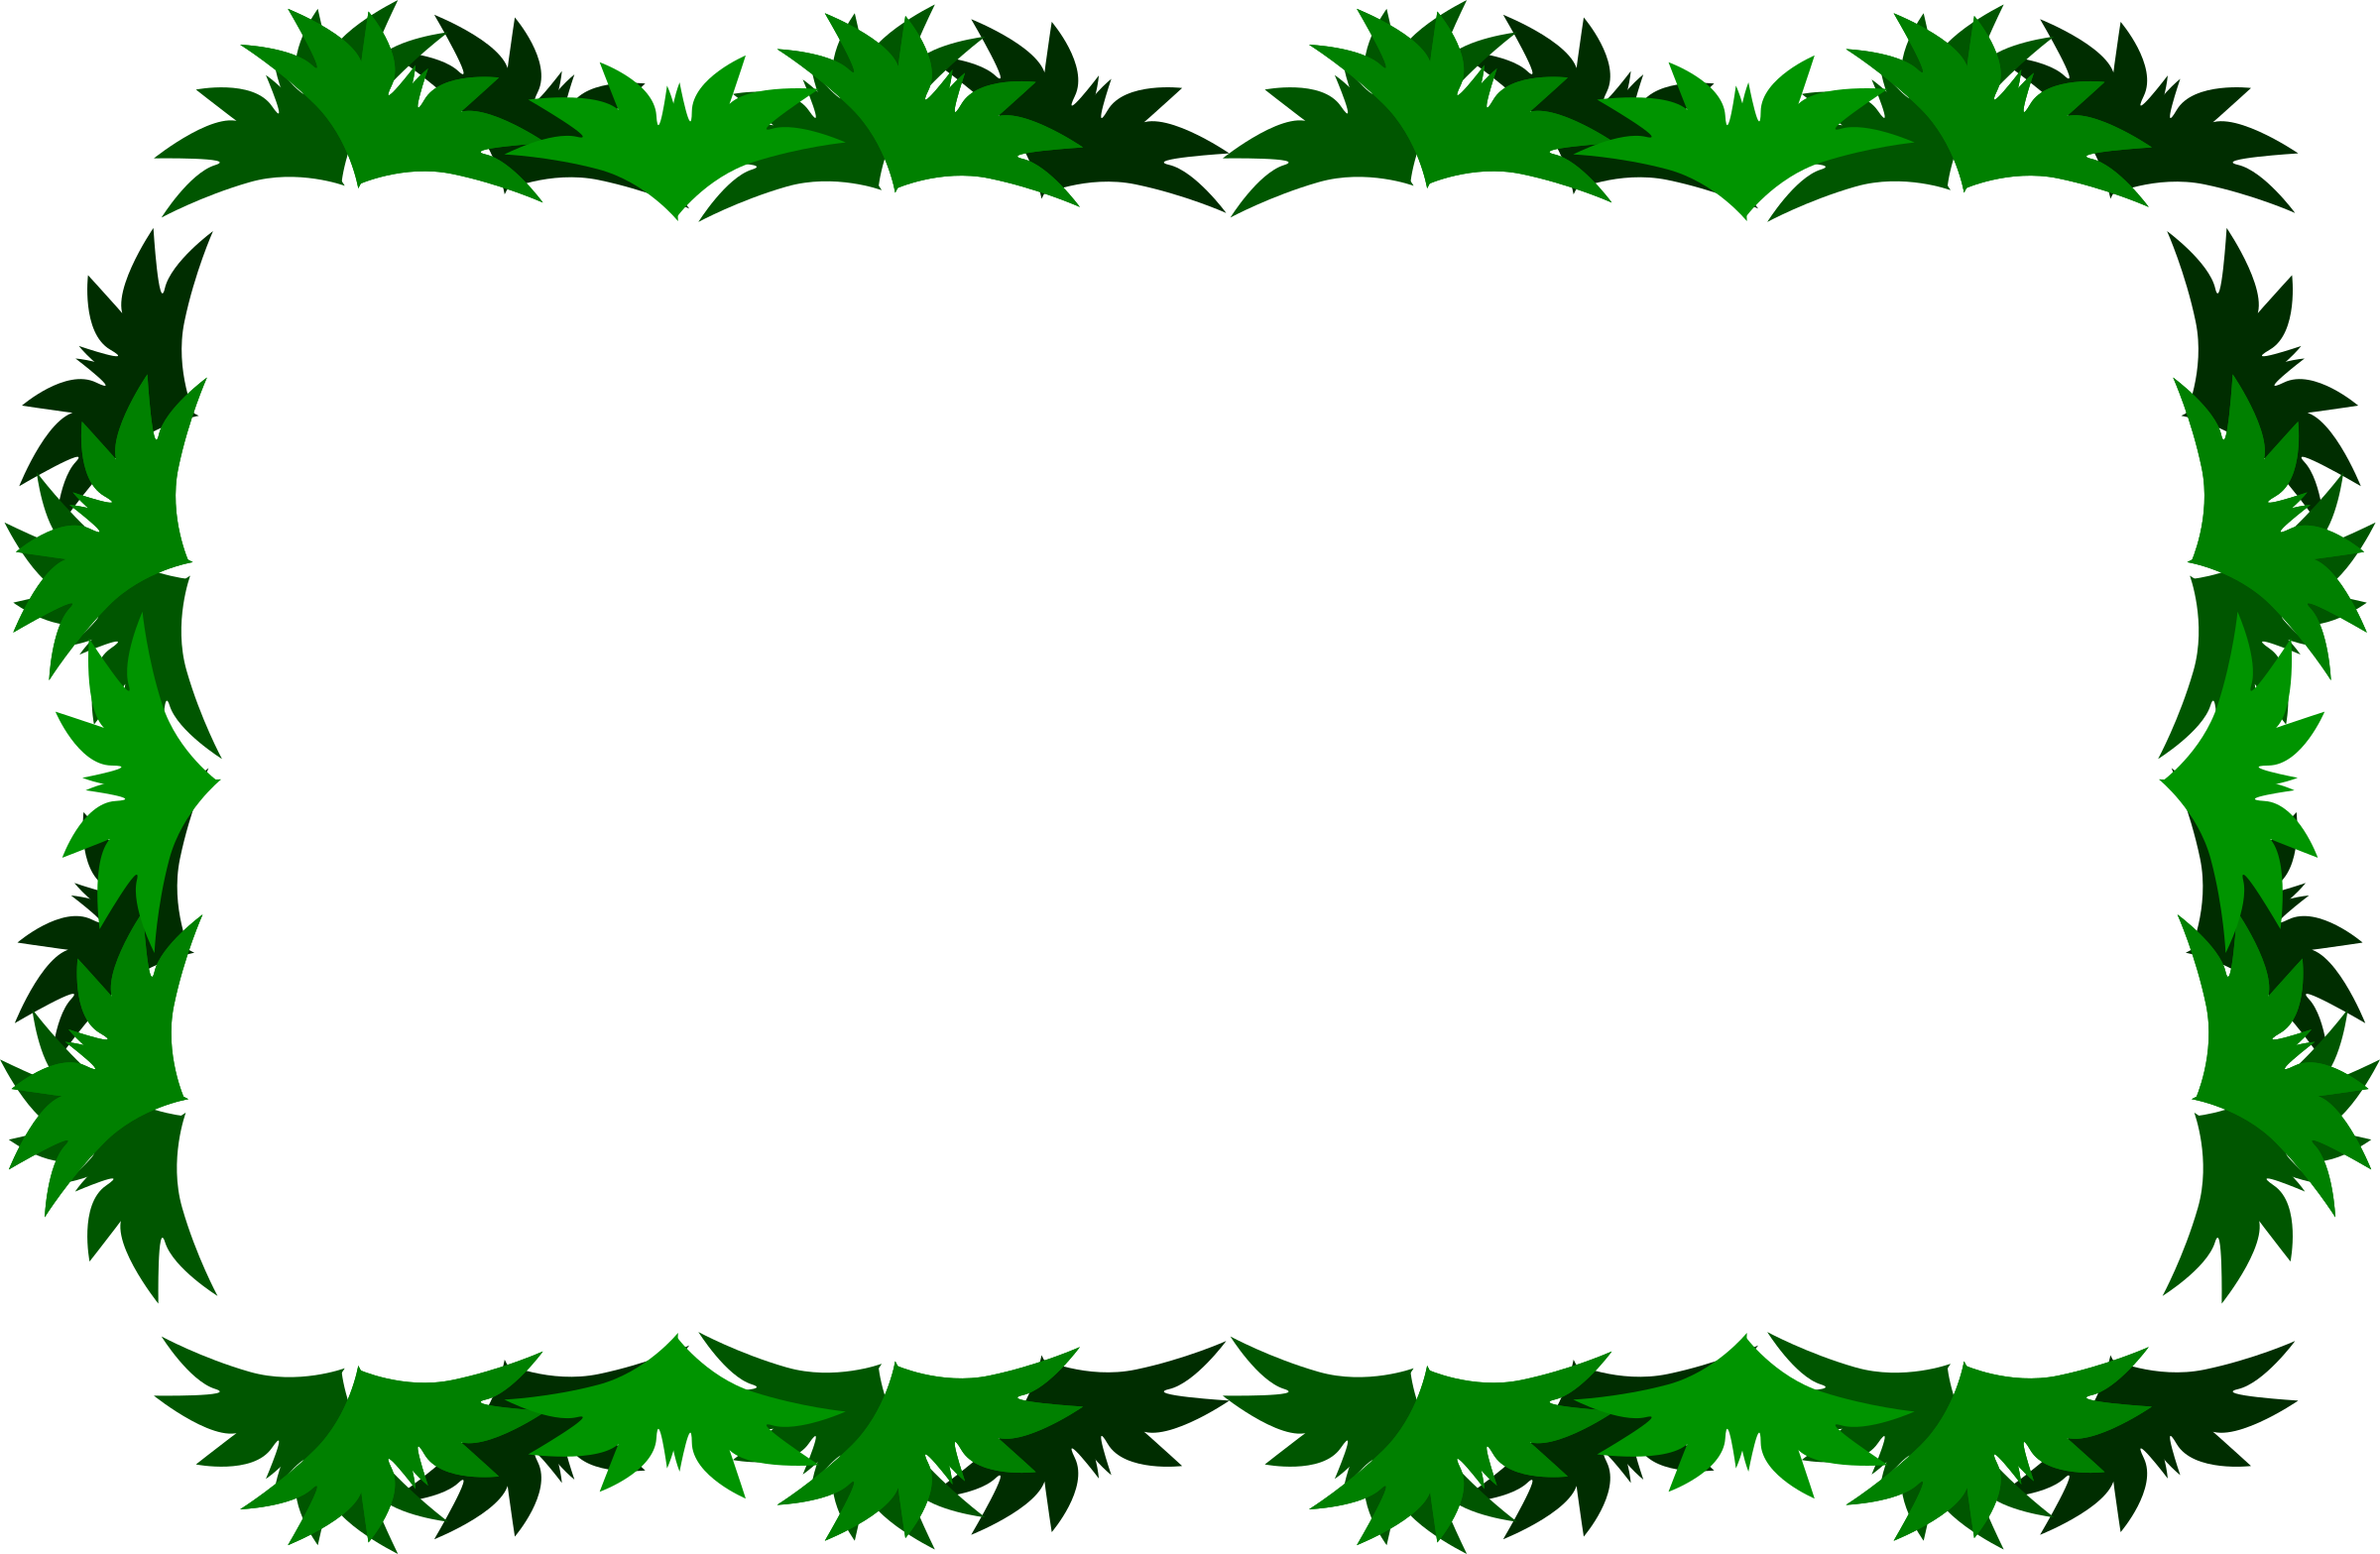 Green frame icons png. Ivy clipart design